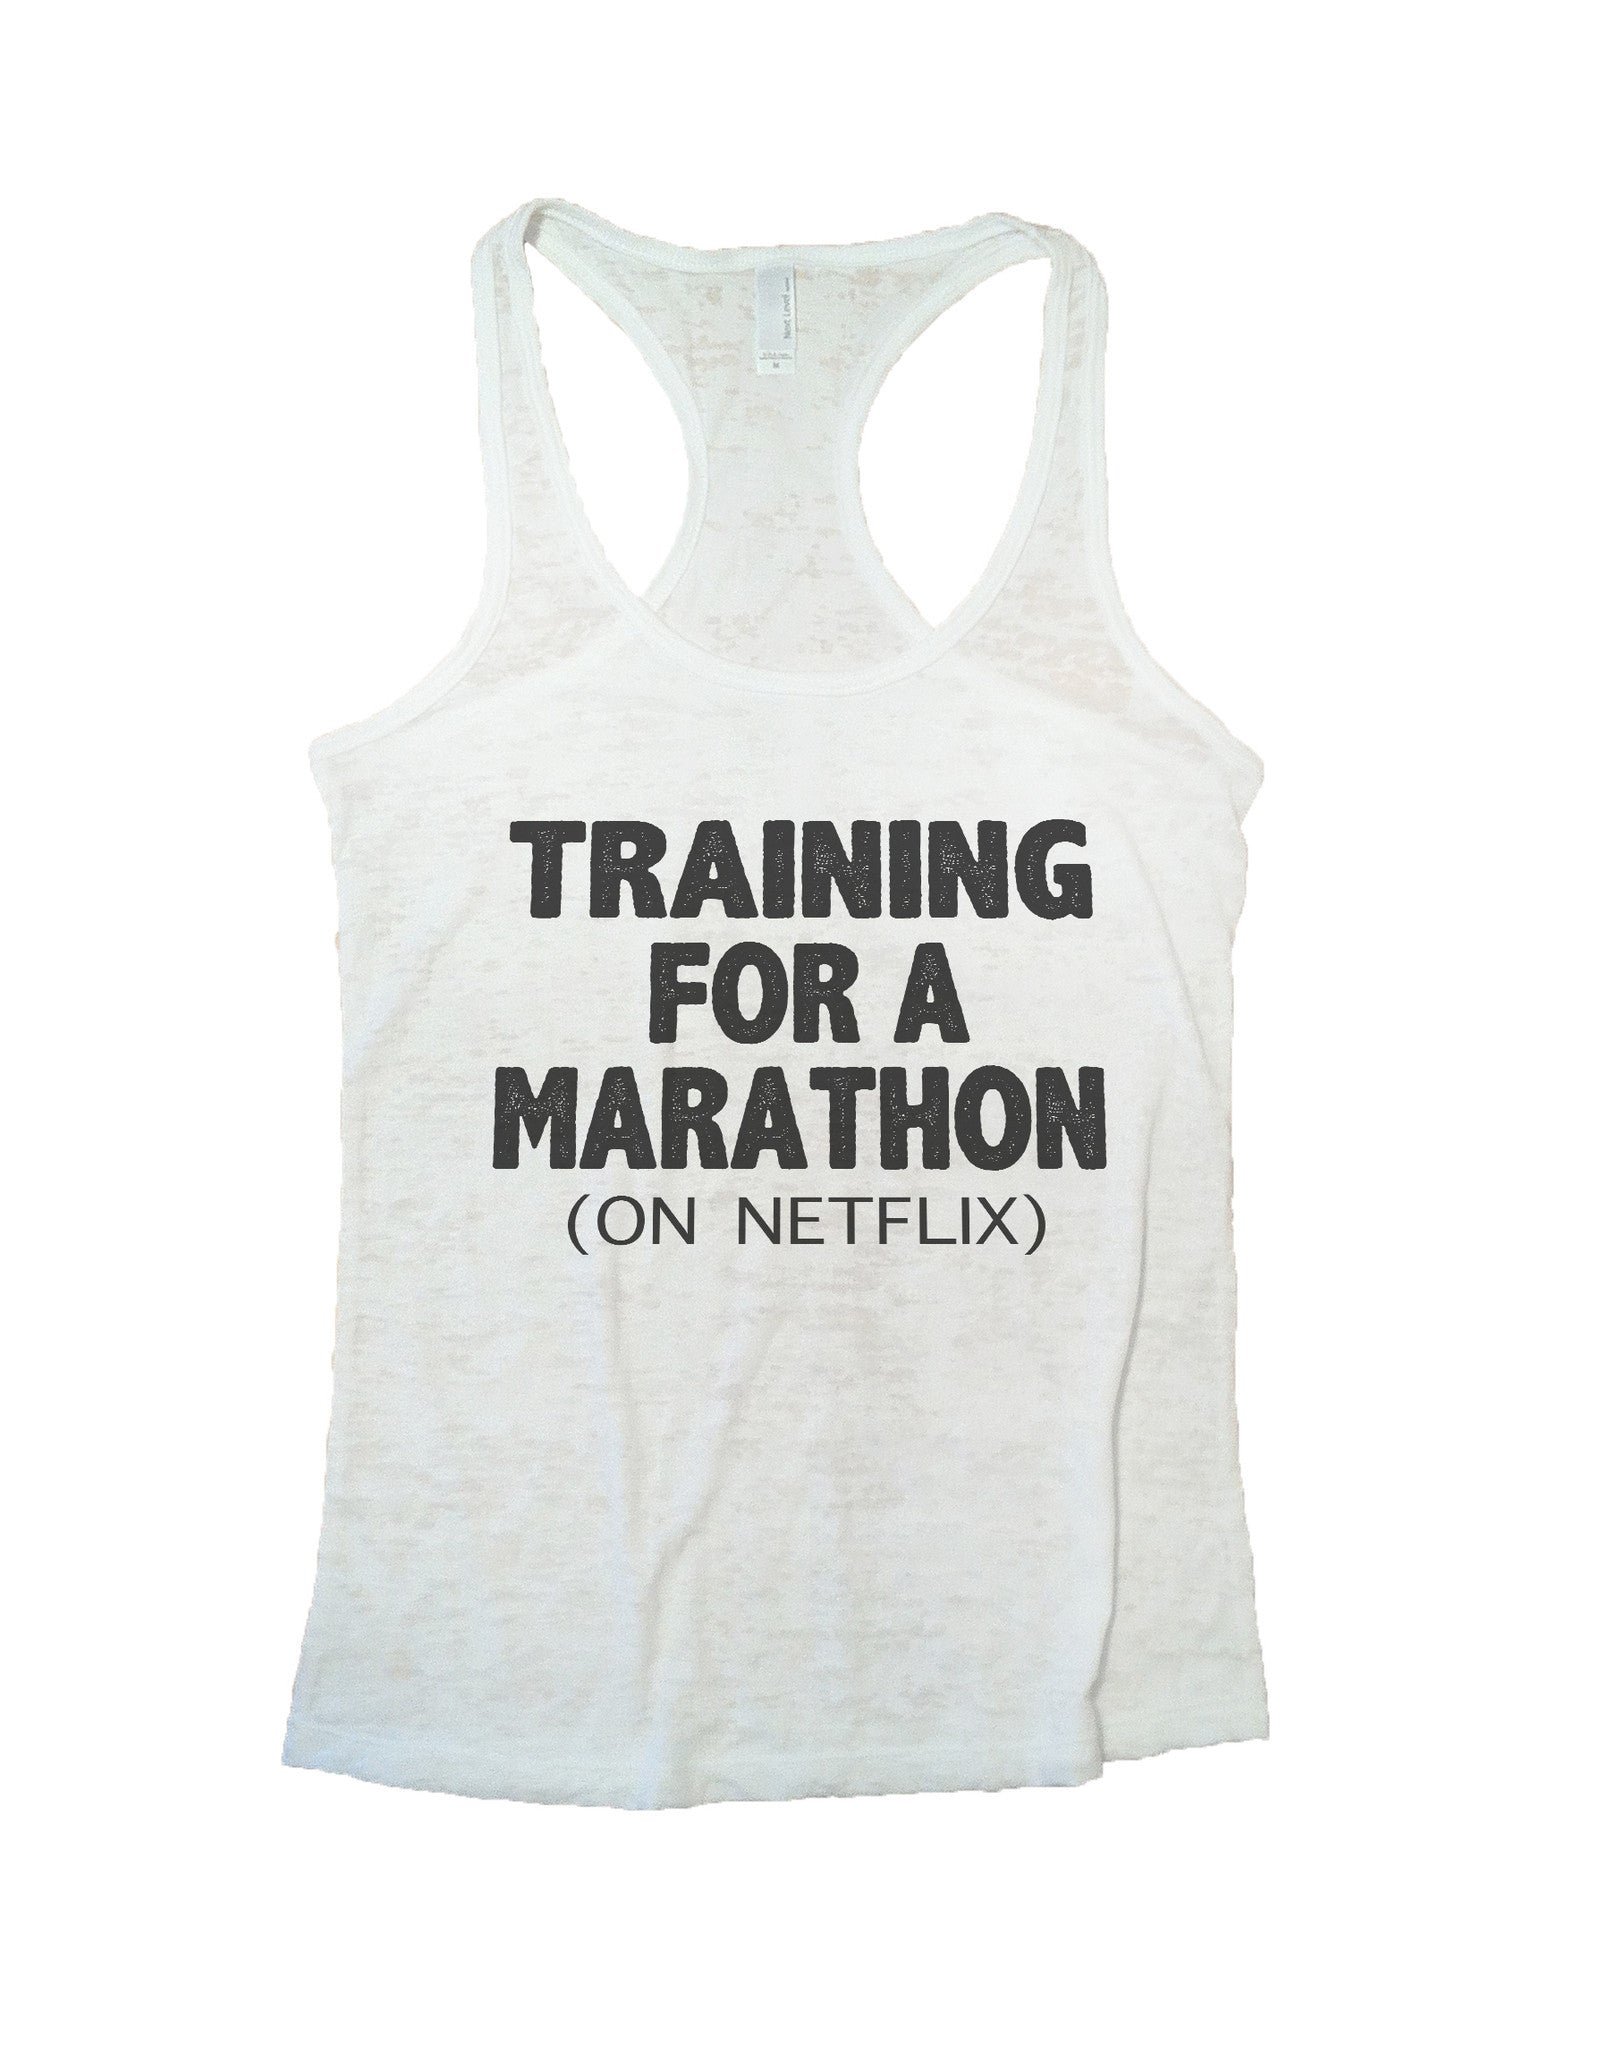 Training For A Marathon On Netflix Burnout Tank Top By BurnoutTankTops.com - 741 - Funny Shirts Tank Tops Burnouts and Triblends  - 5